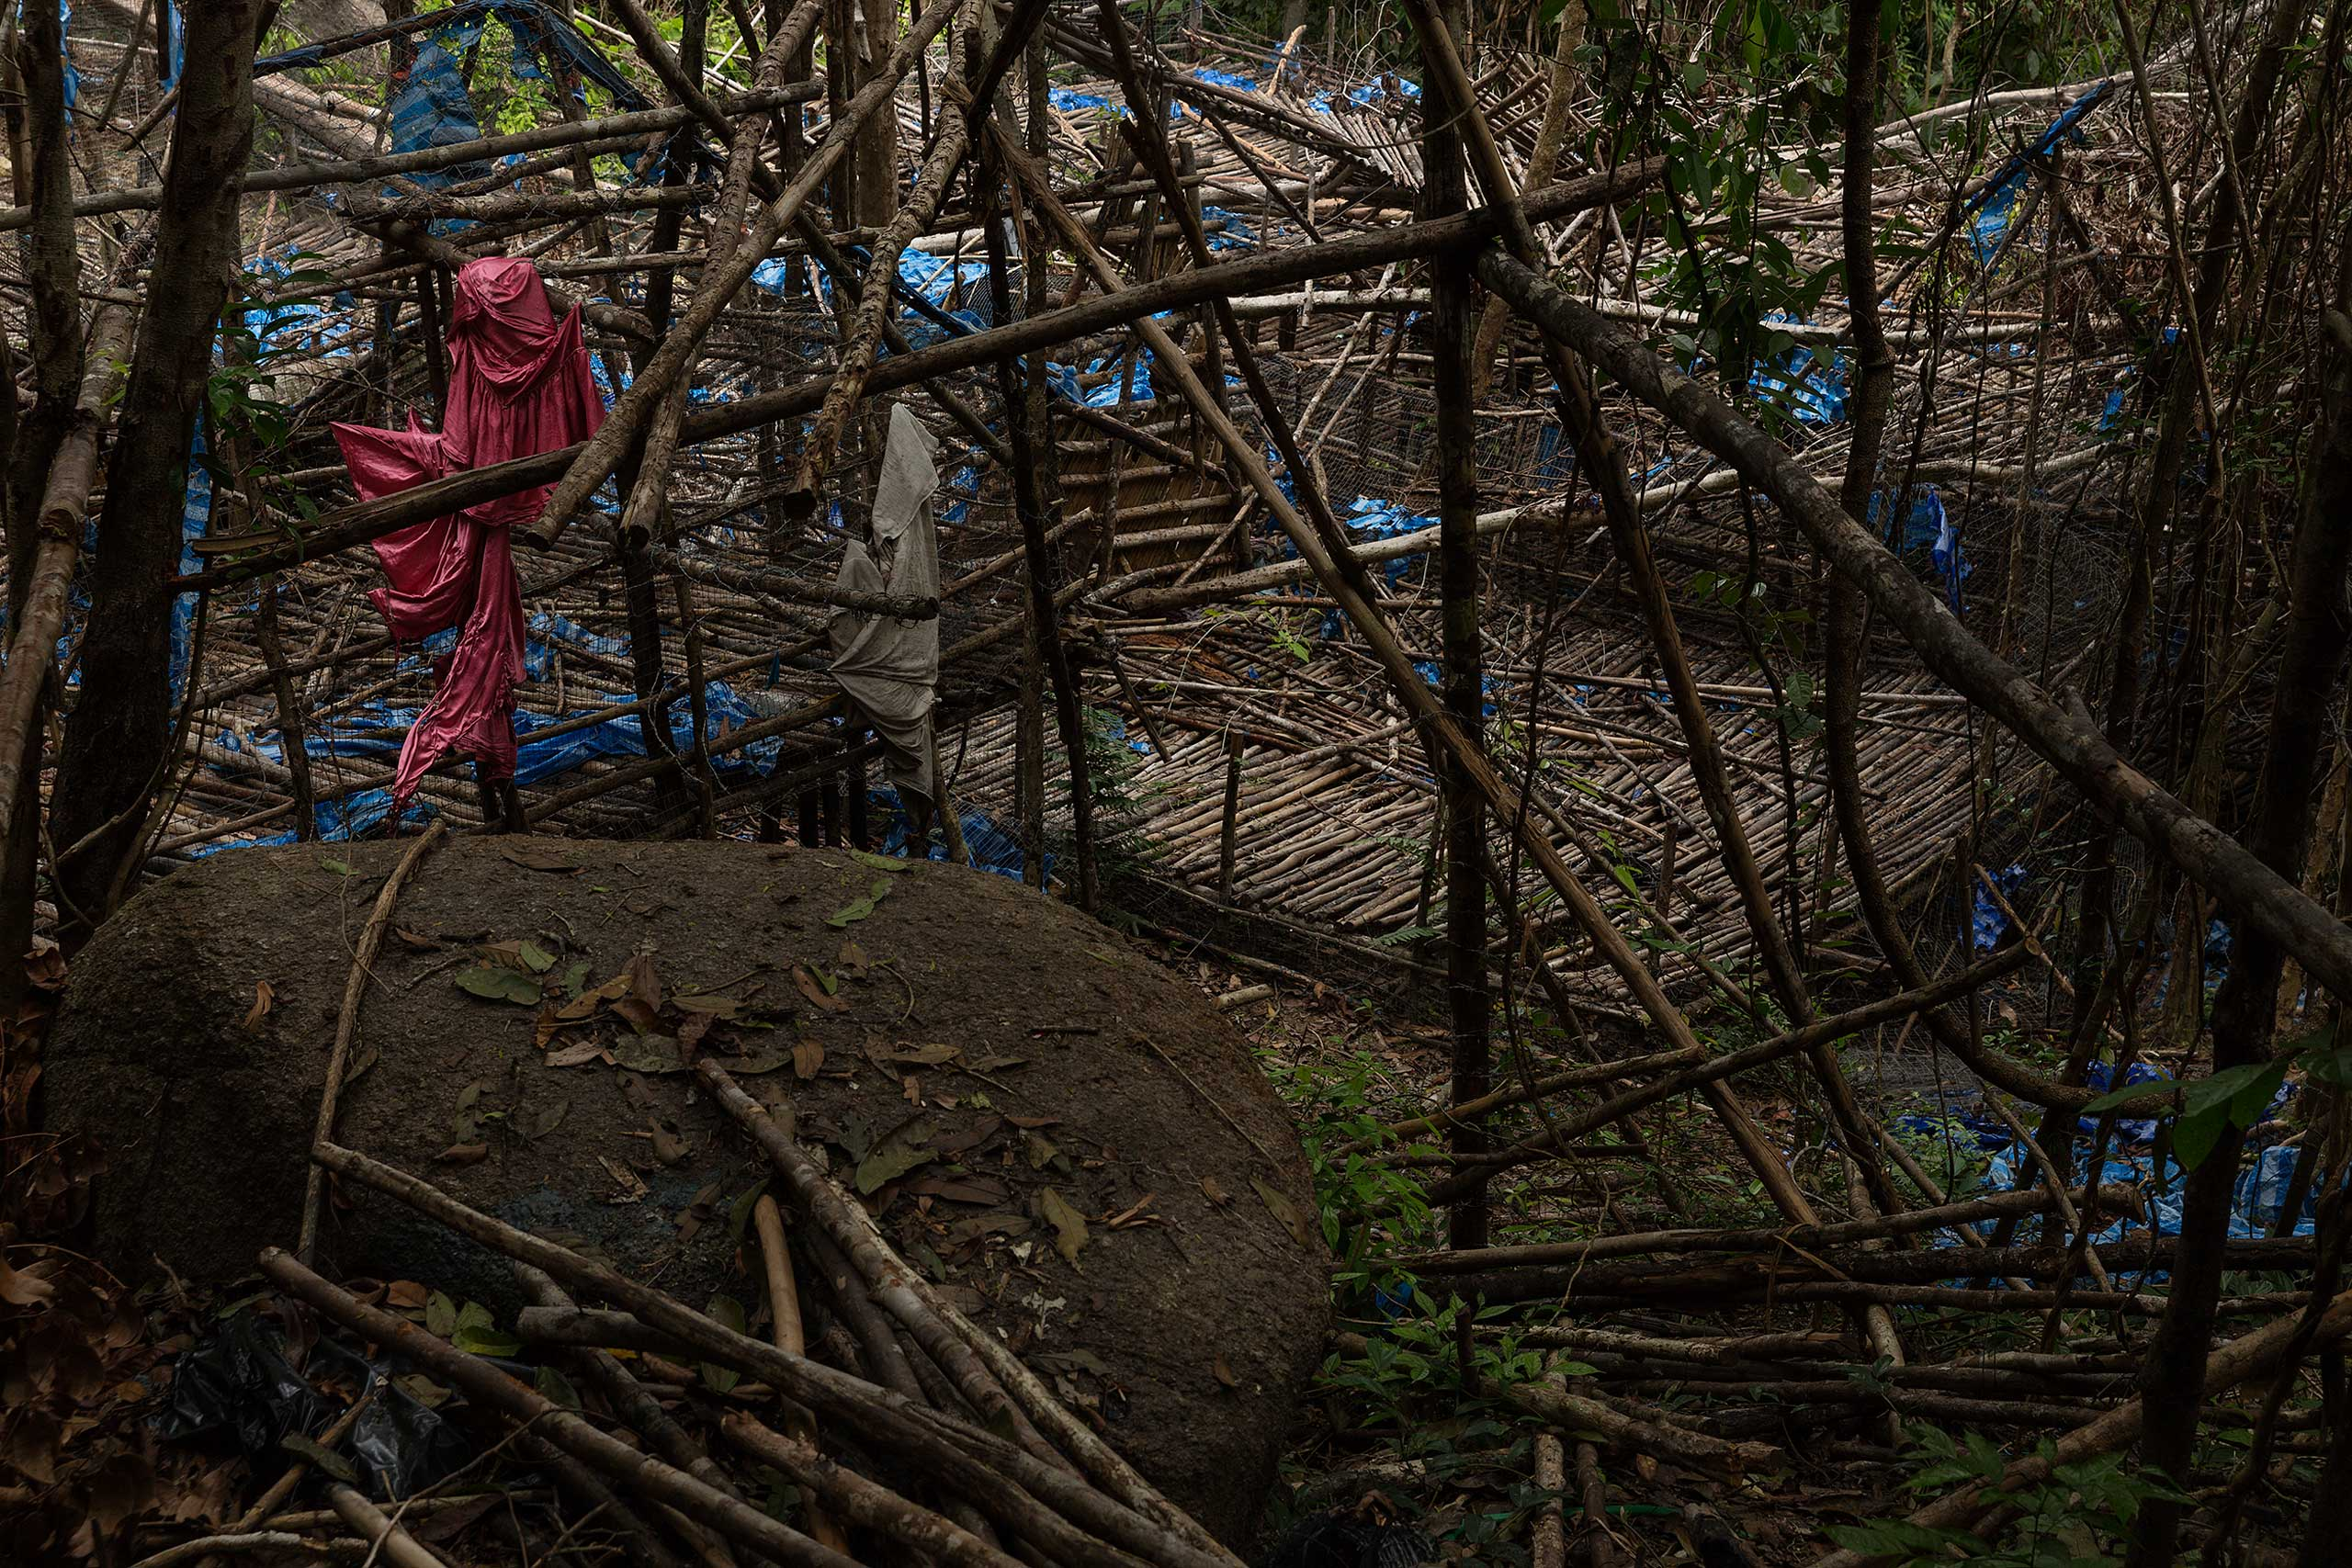 An abandoned camp allegedly for trafficked Rohingya and Bangladeshis in mountainous jungle on the Malaysian side of the Thai-Malaysian border.